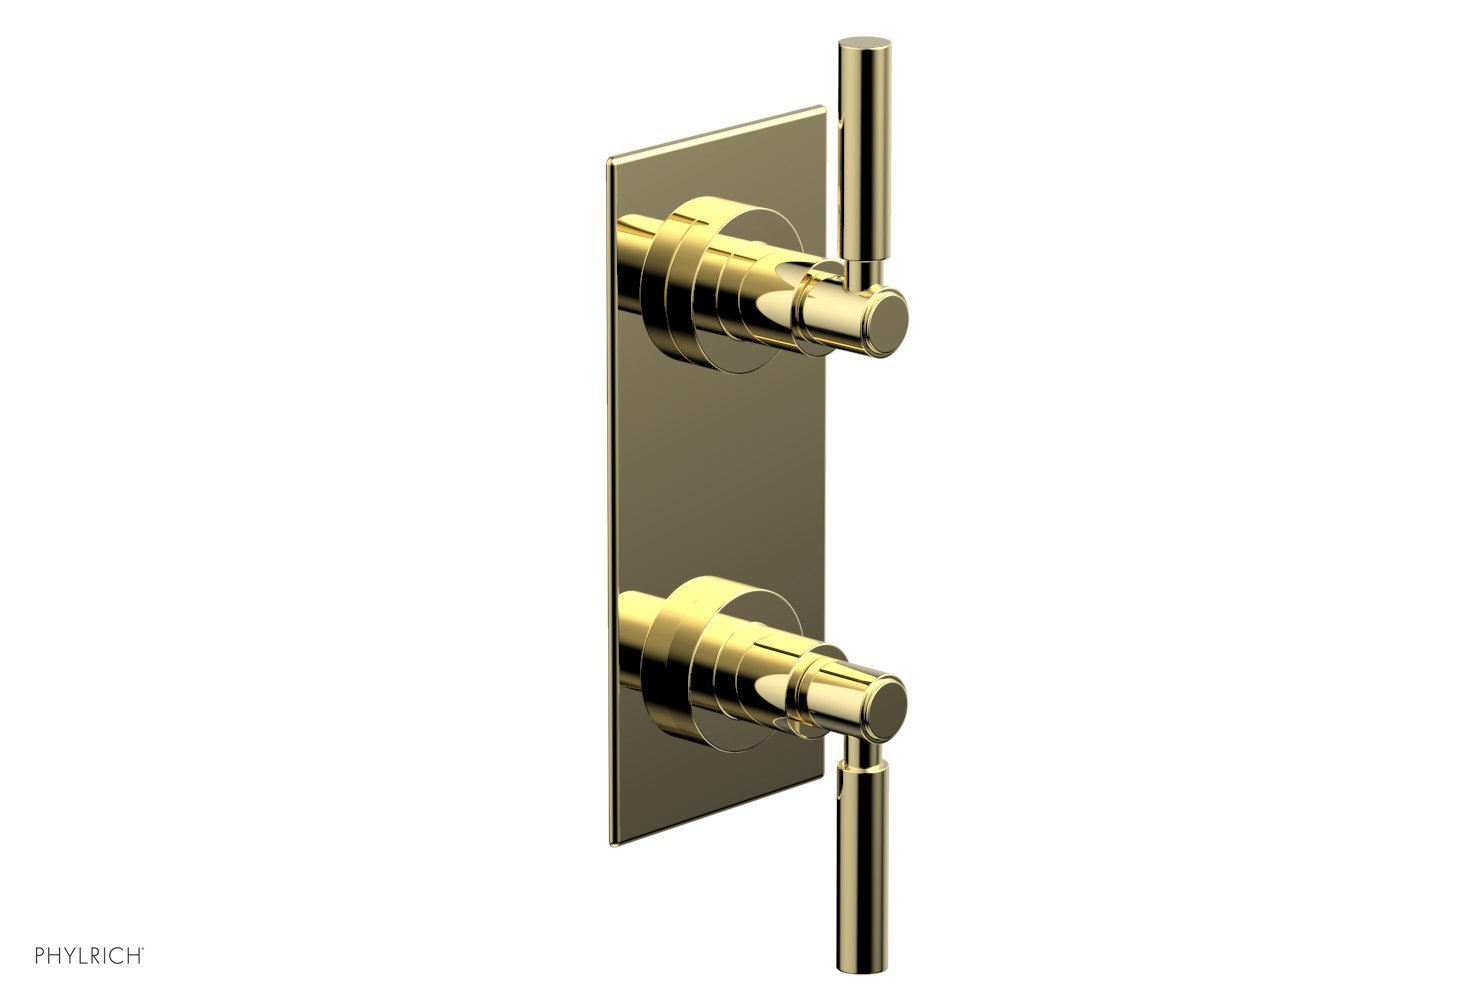 """BASIC 1/2"""" Thermostatic Valve with Volume Control or Diverter Lever Handles 4-344 - Polished Brass"""